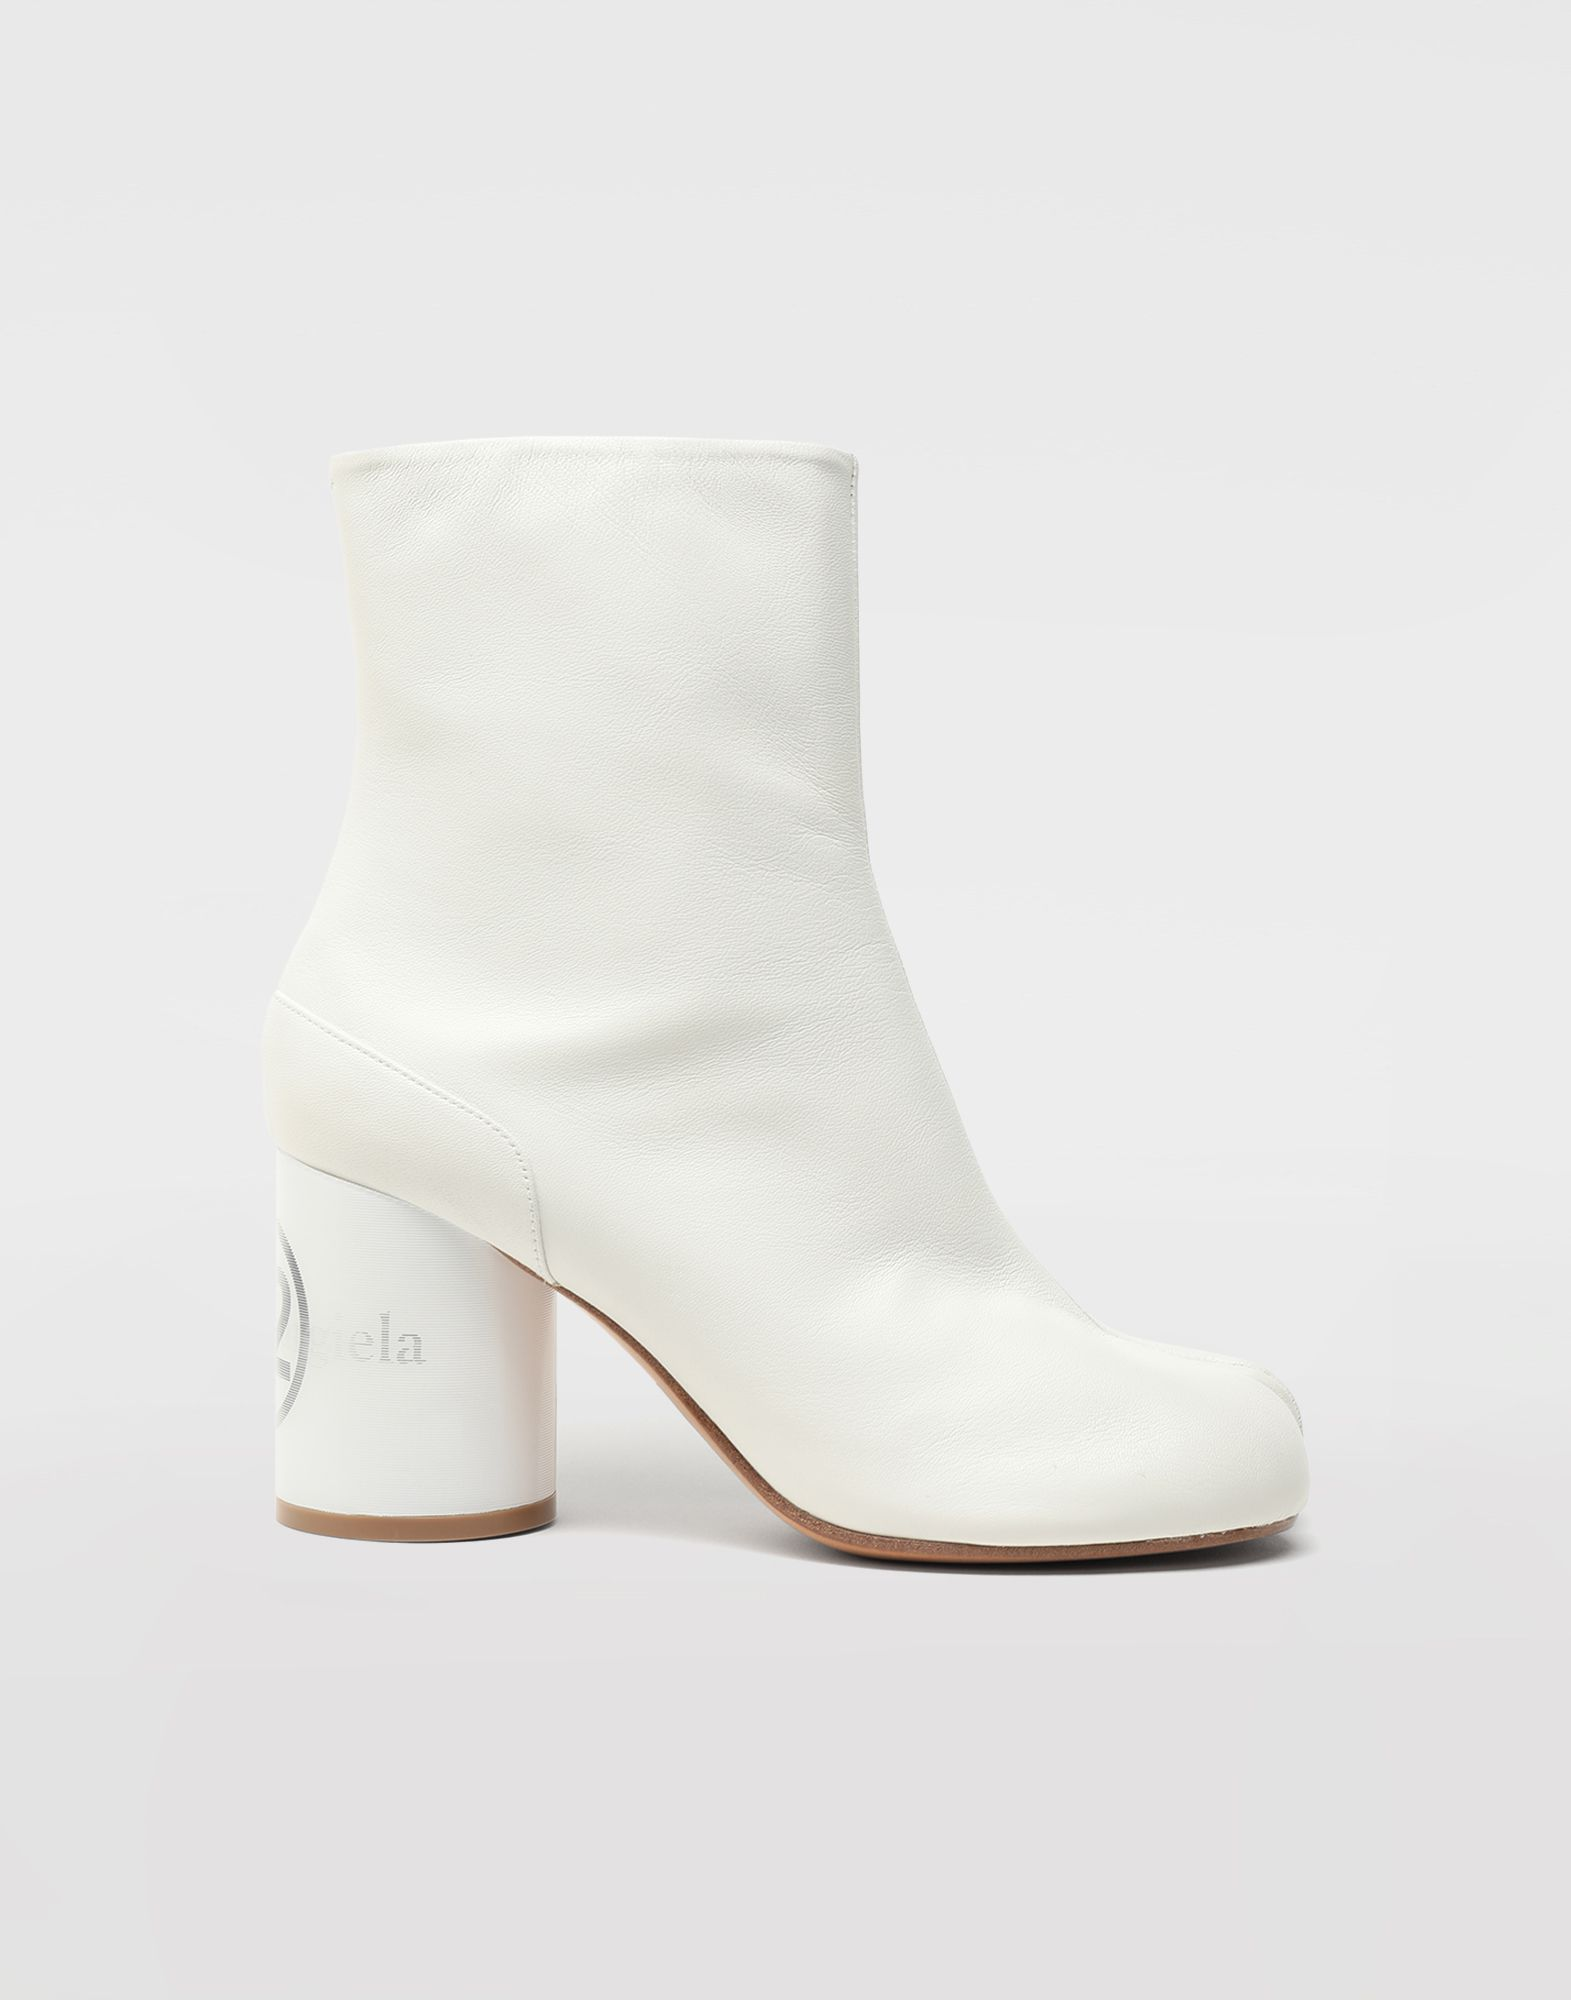 MAISON MARGIELA Tabi hologram ankle boots Tabi boots & Ankle boots Woman f